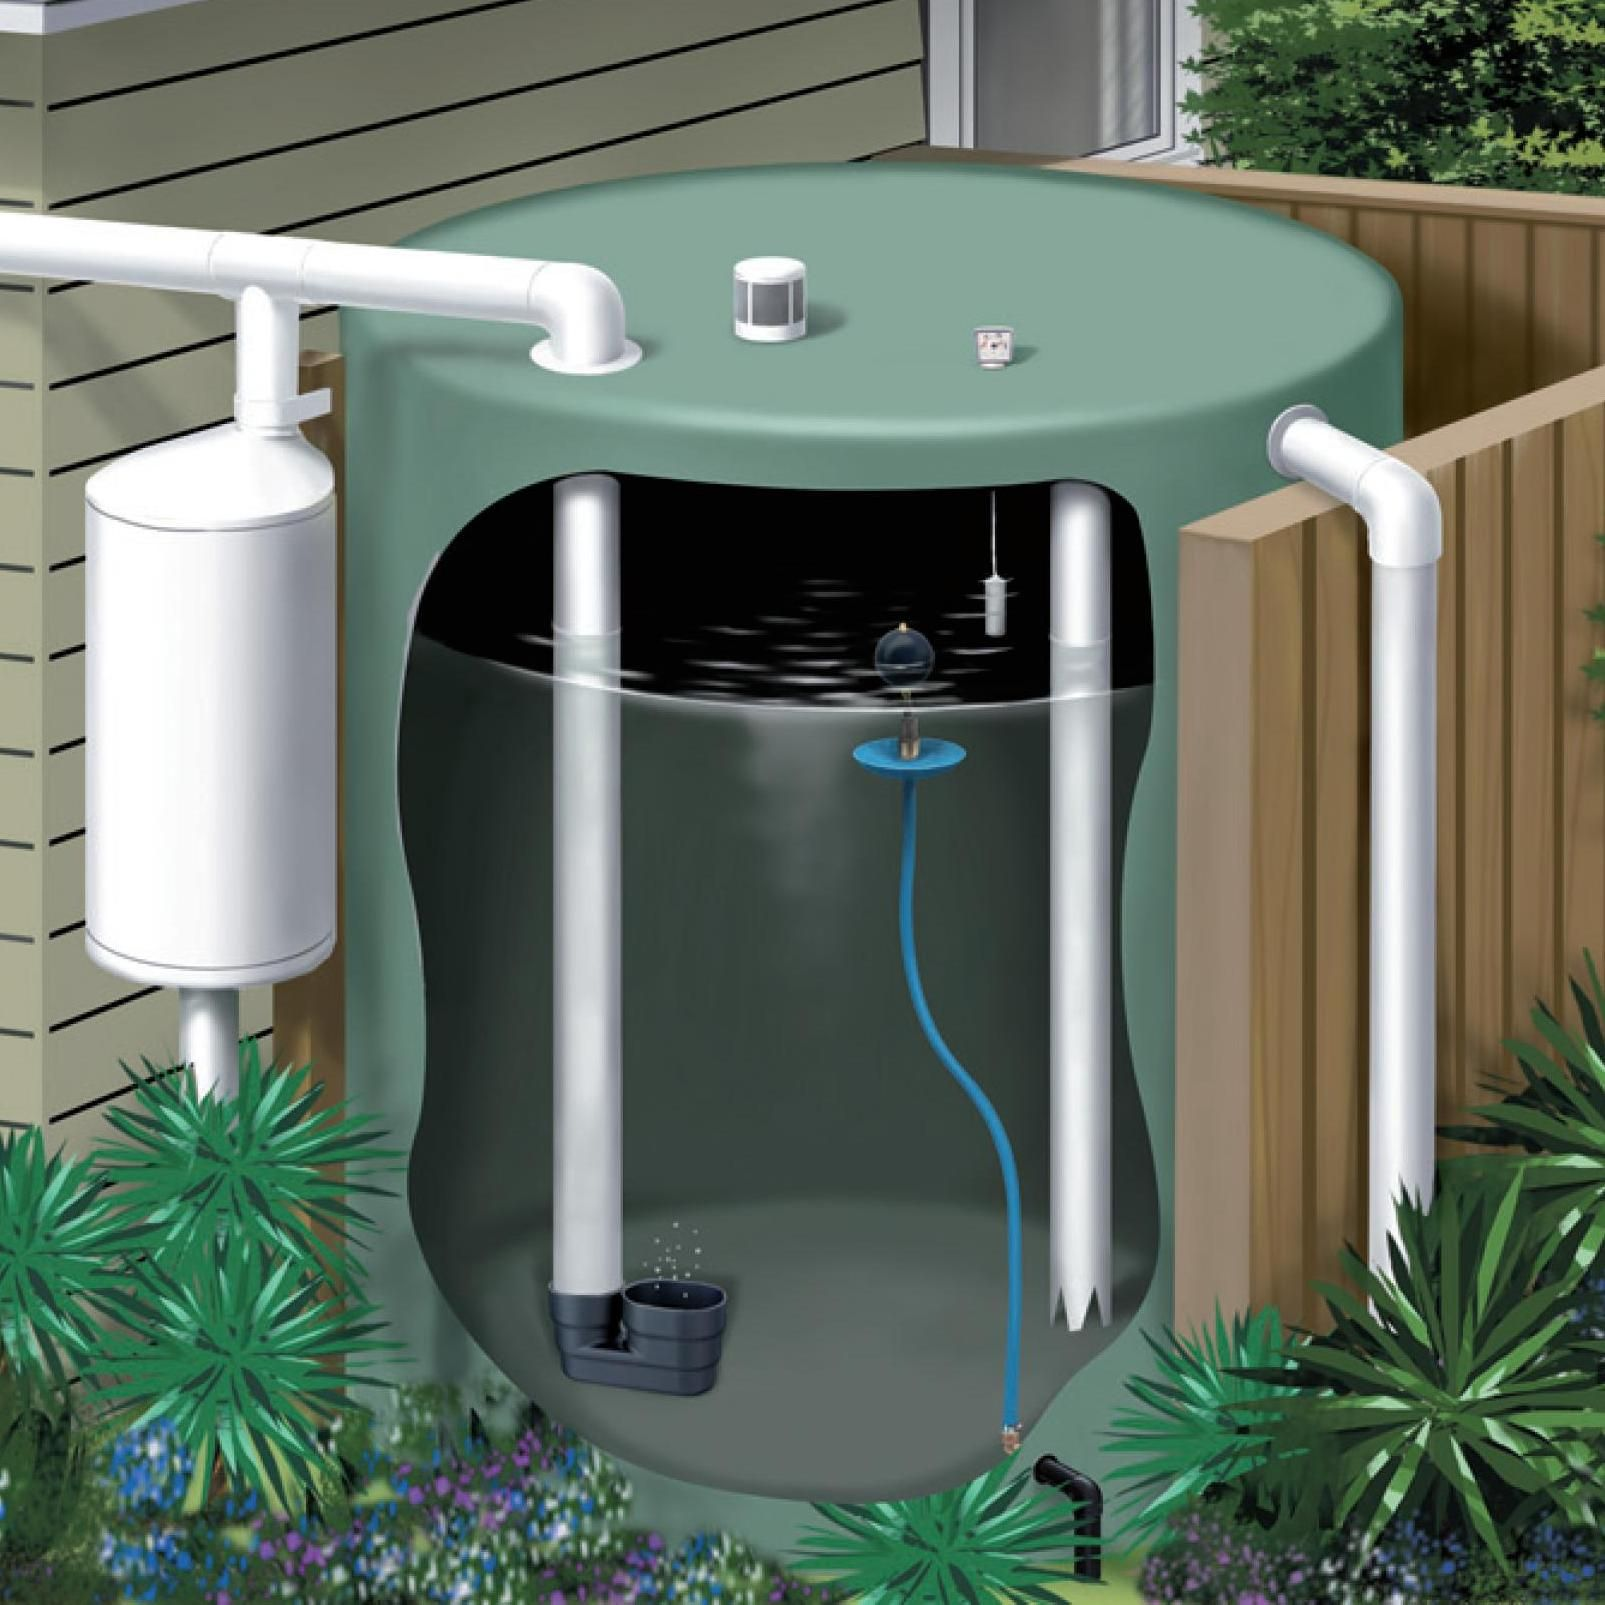 How safe is the water youure collecting when collecting rainwater